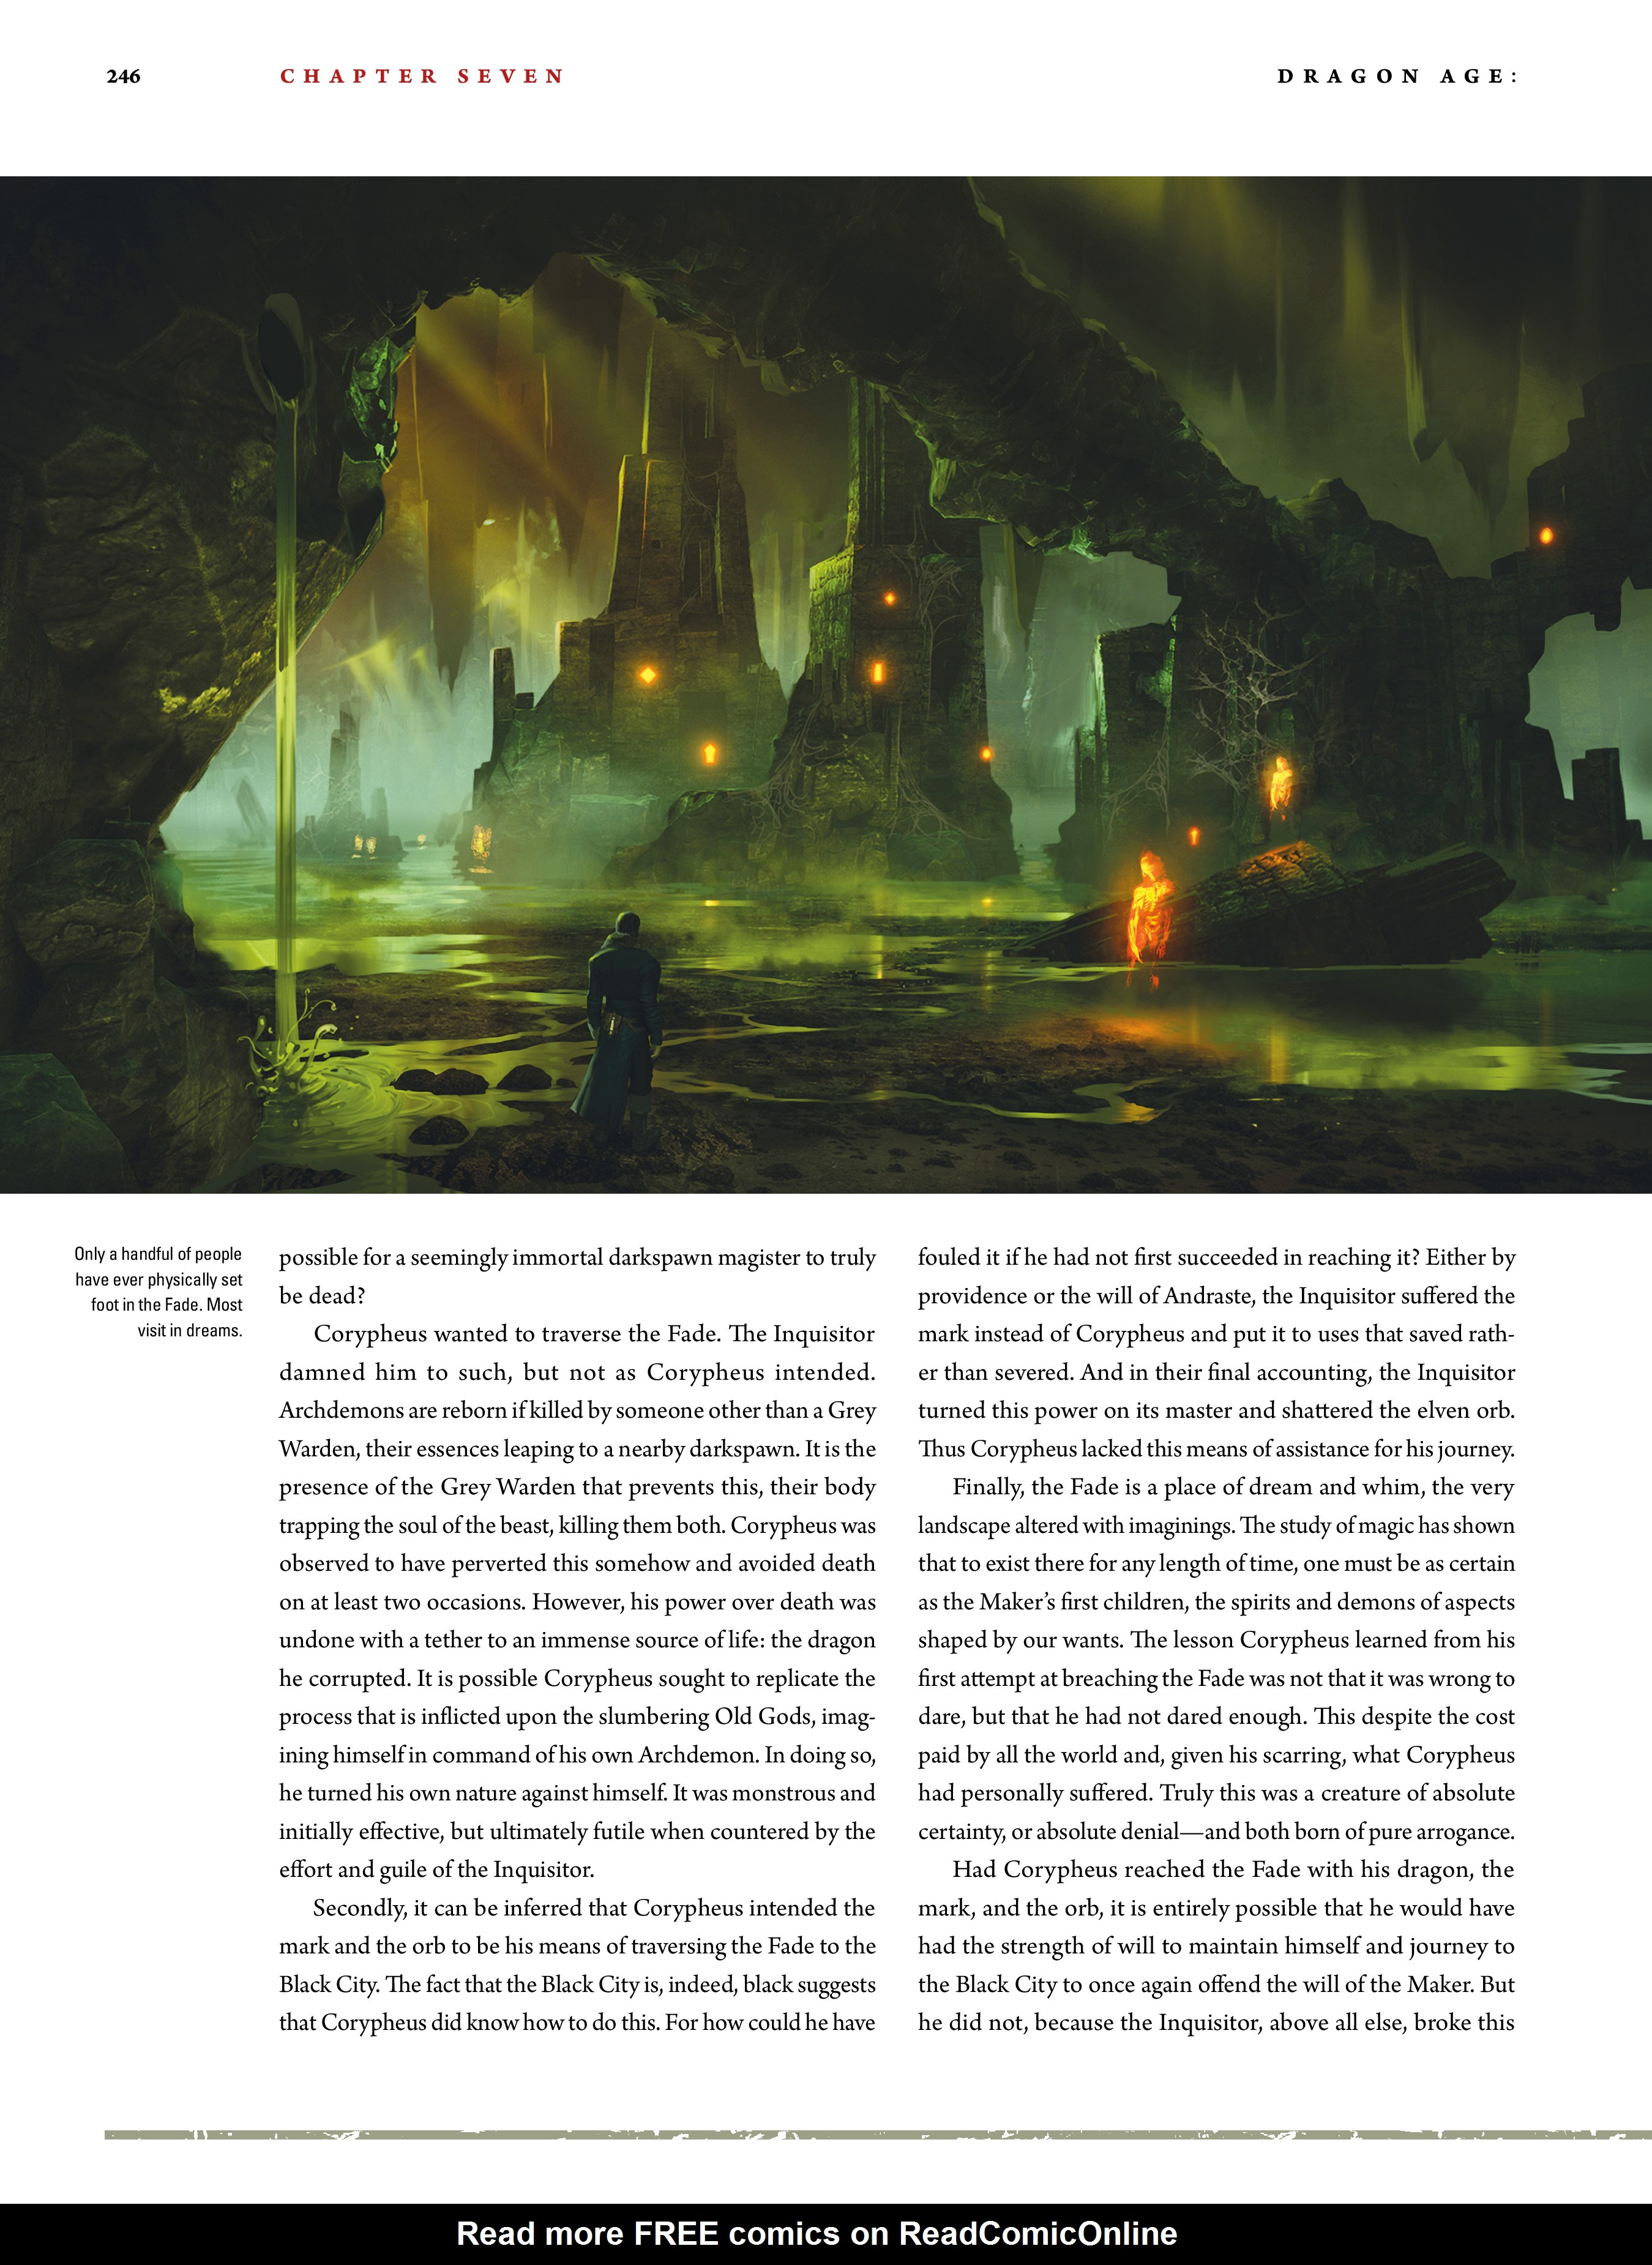 Read online Dragon Age: The World of Thedas comic -  Issue # TPB 2 - 240